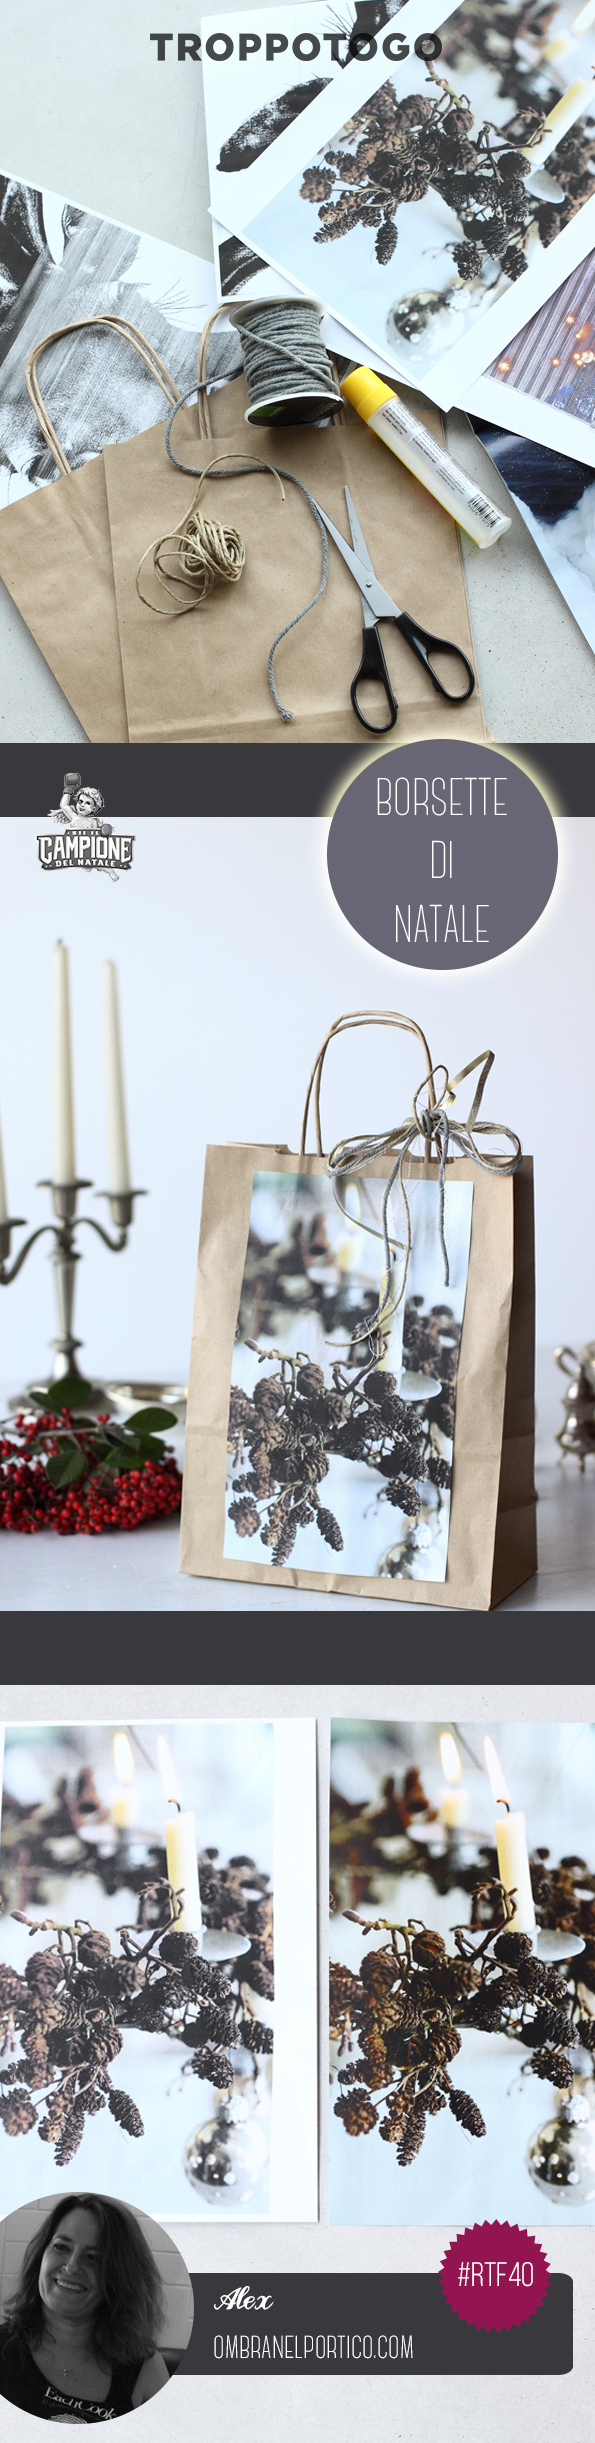 pinnable-image_paper bag